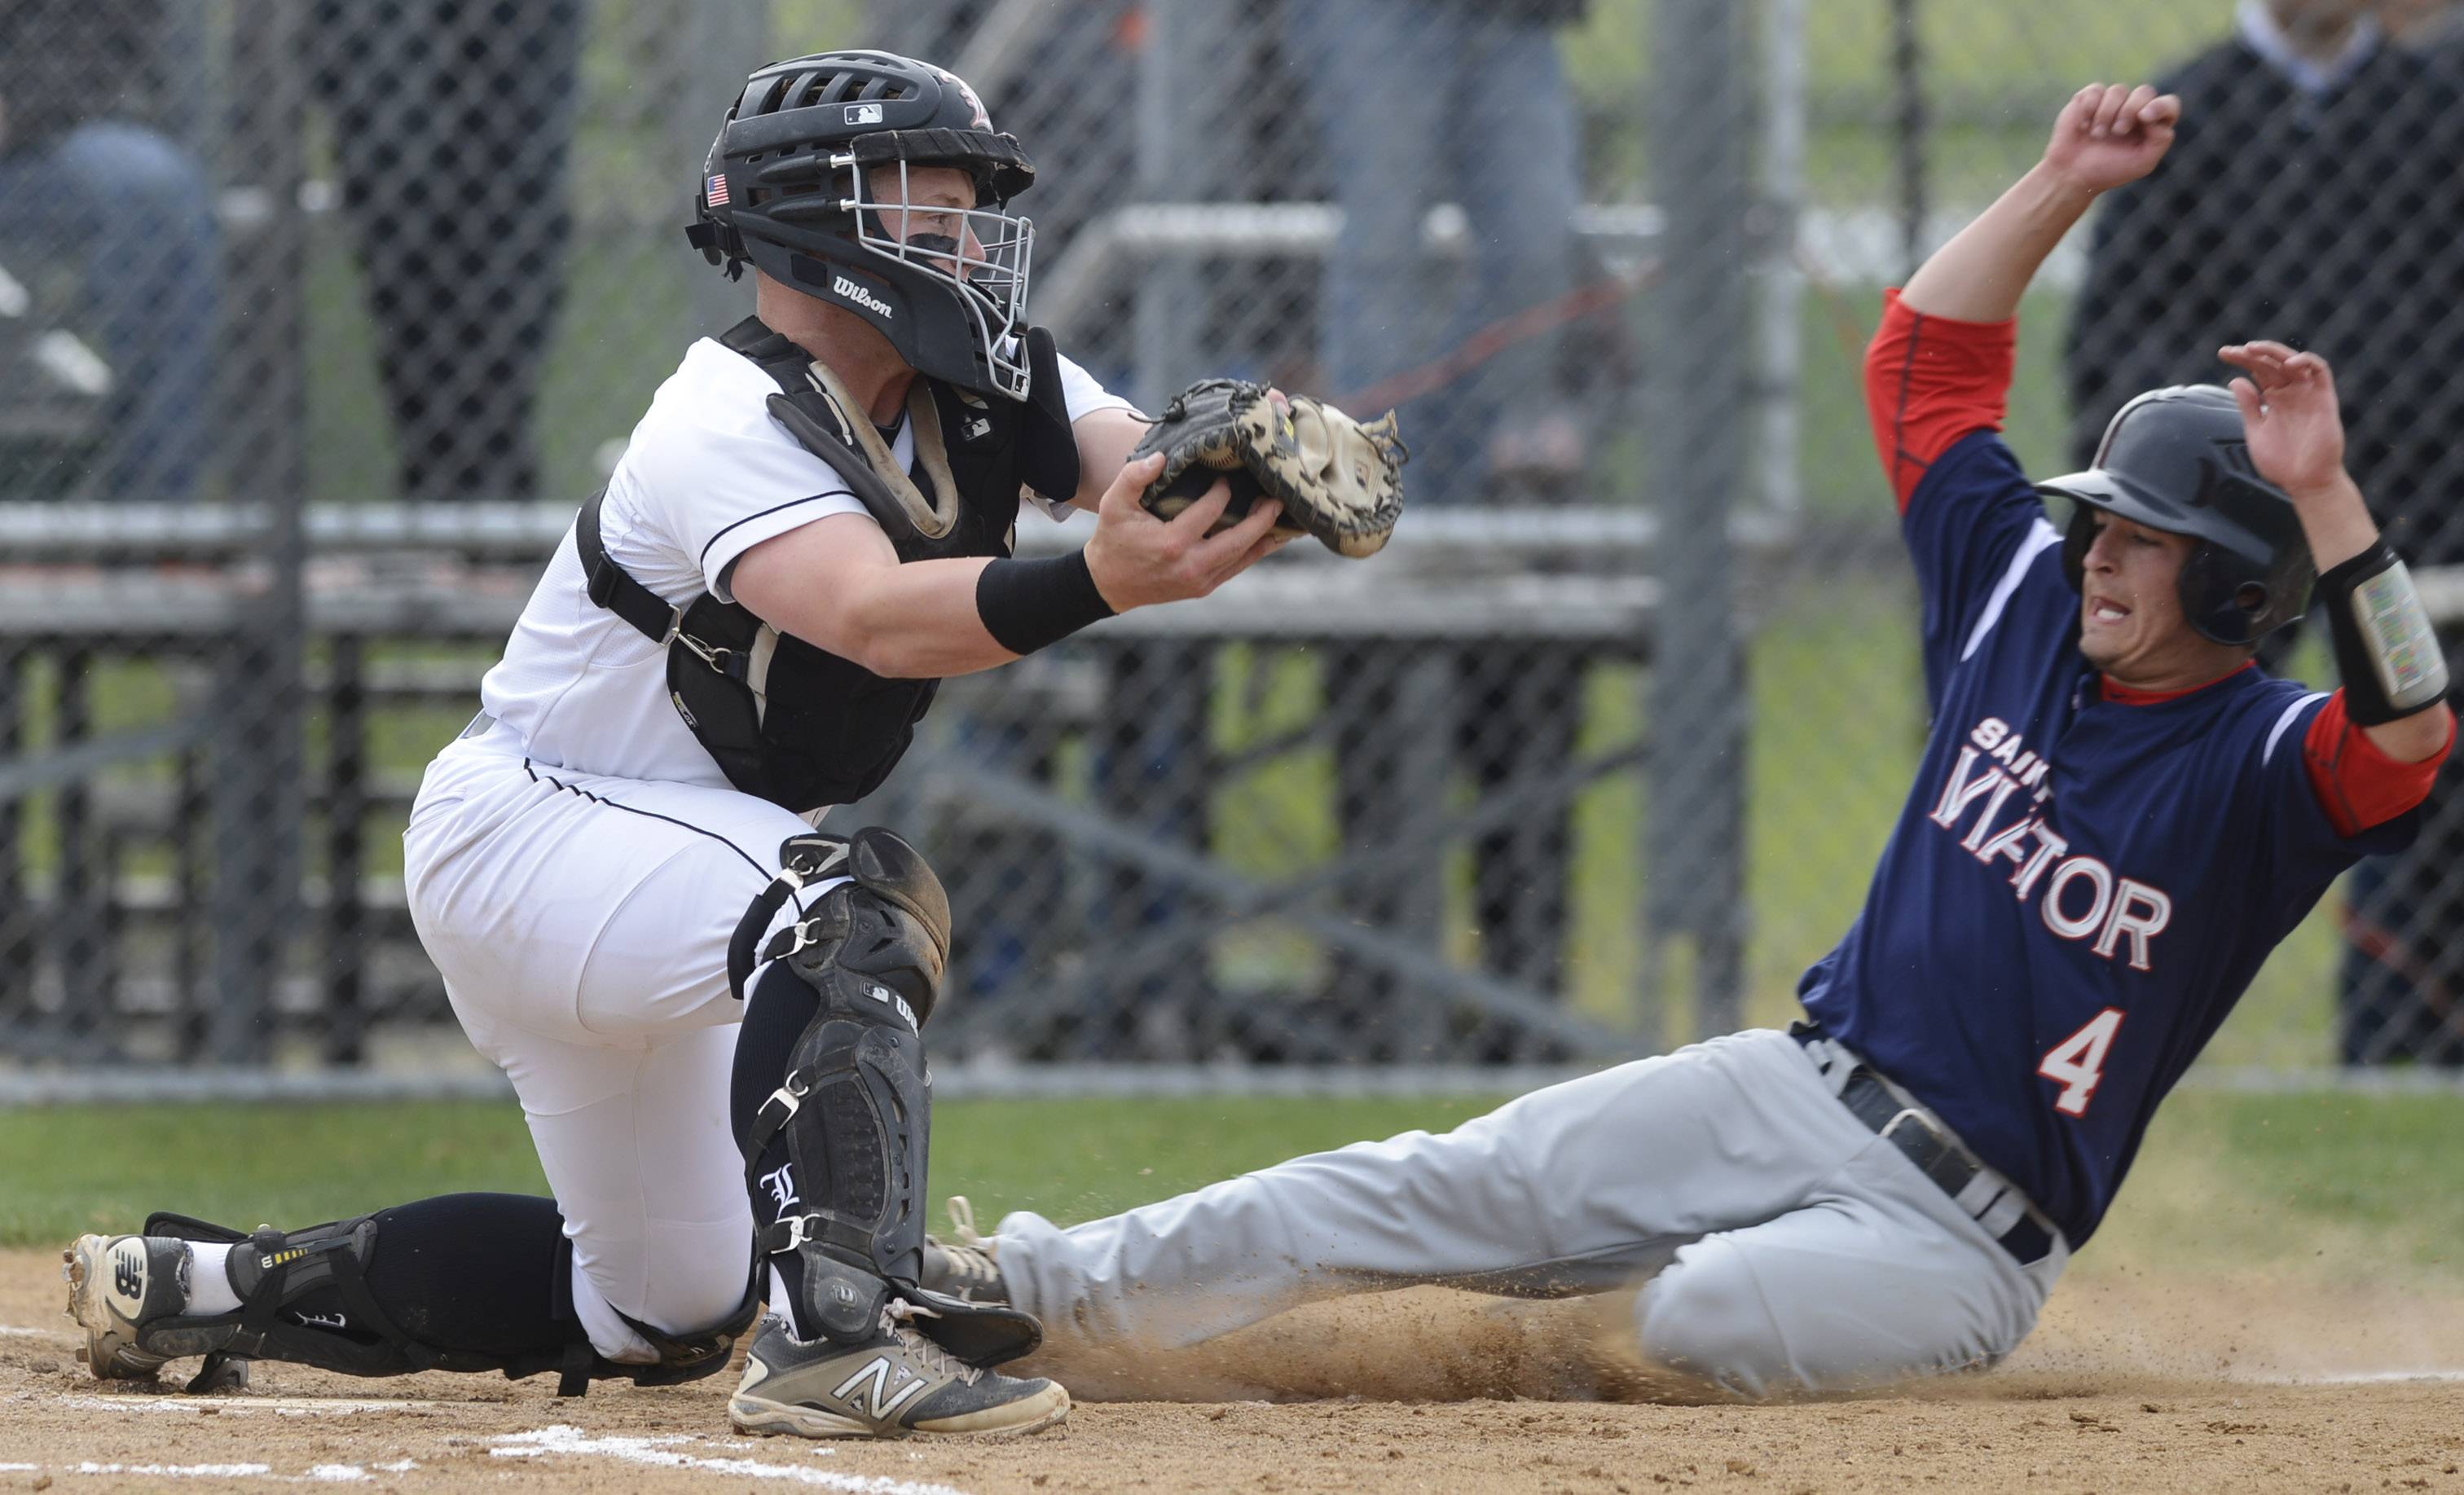 St. Viator's Matt Prazuch slides in safely with the game's first run as Libertyville catcher Evan Skoug takes the throw during Class 4A baseball sectional semifinal play at Glenbrook South on Wednesday.